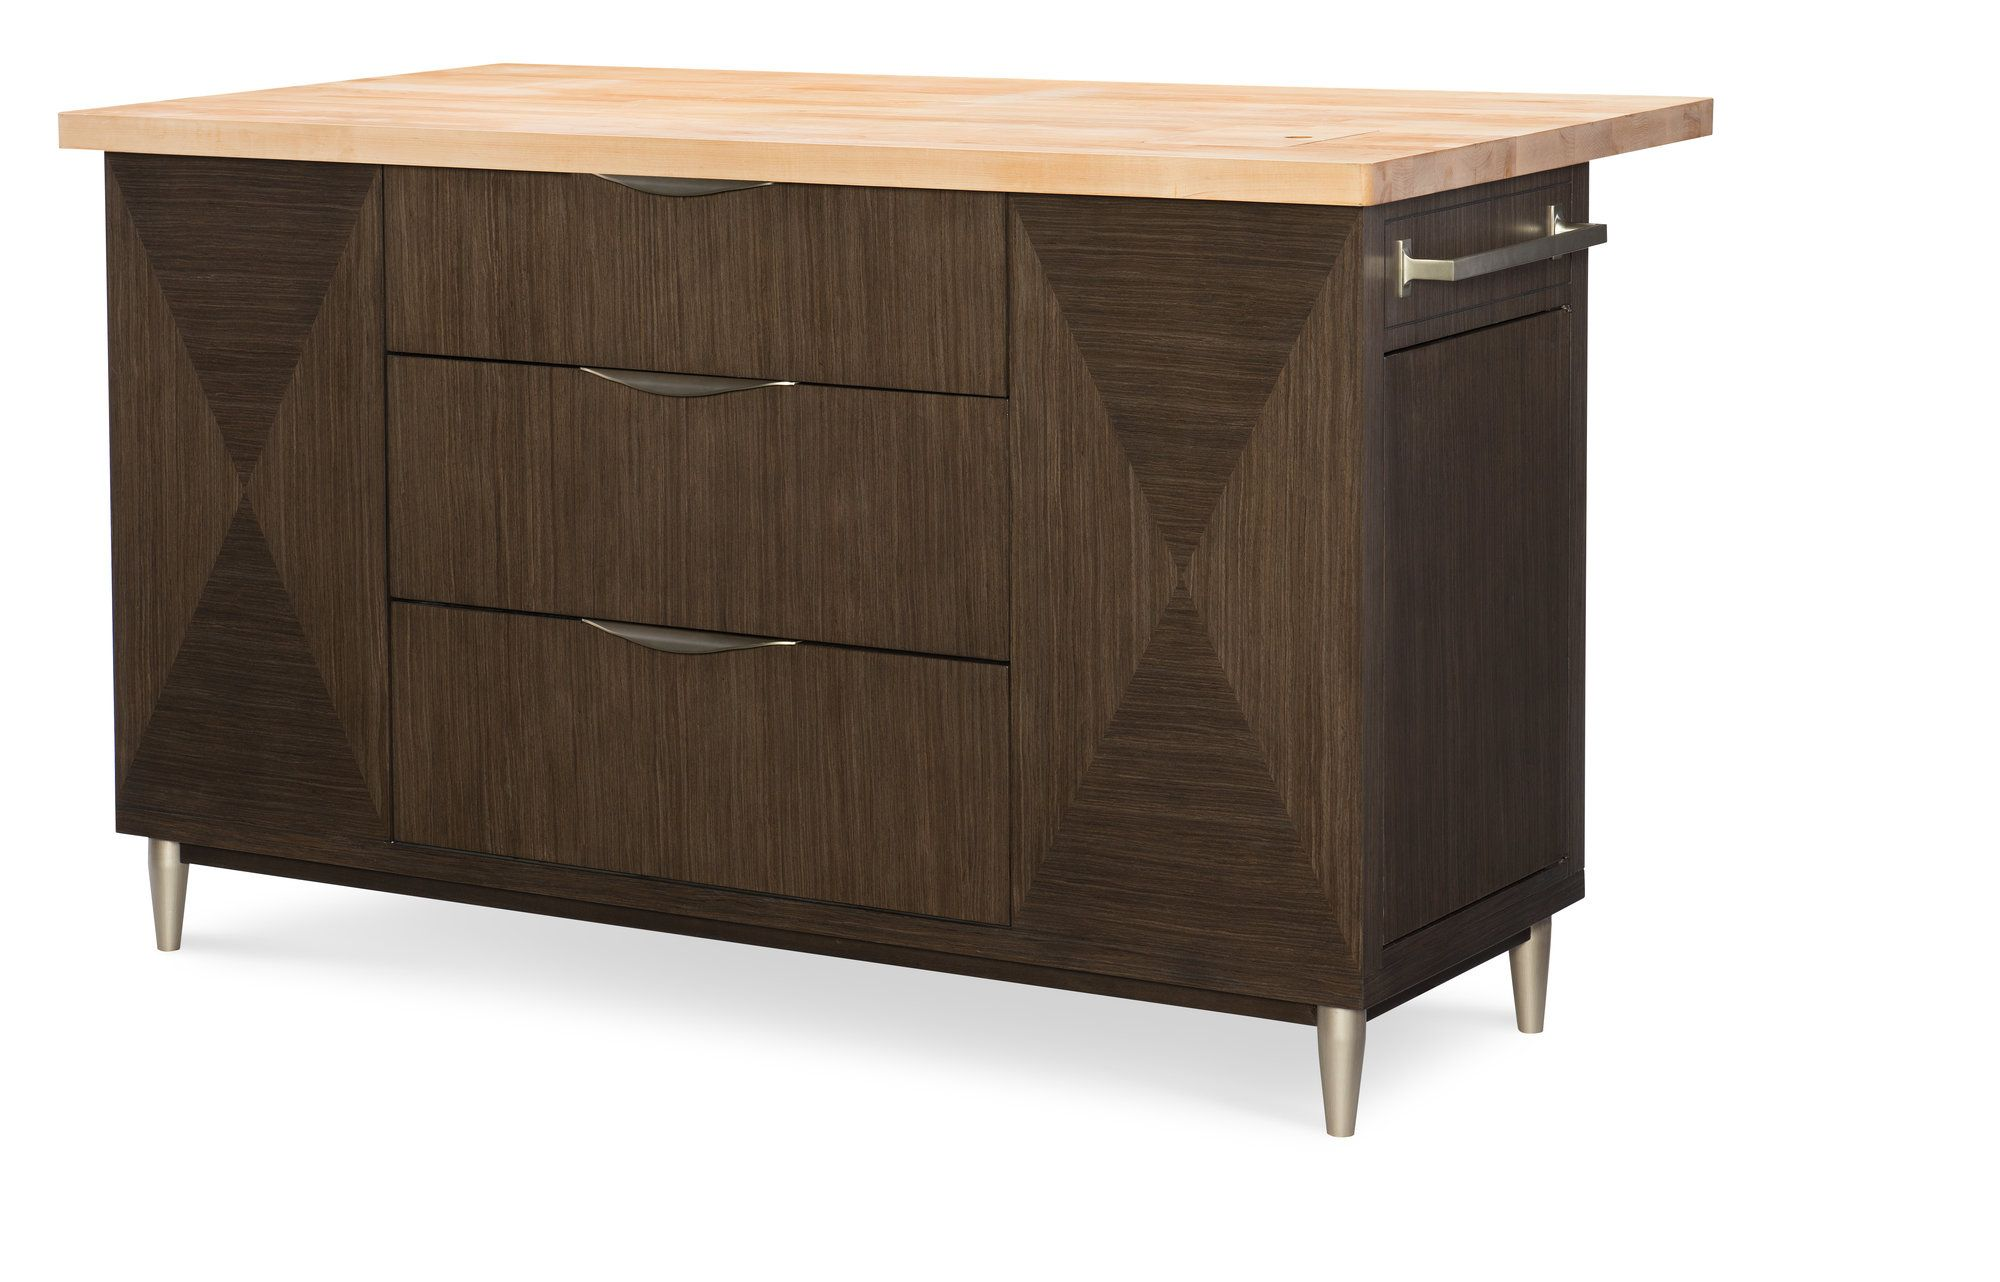 Soho by rachael ray home kitchen island with butcher block soho